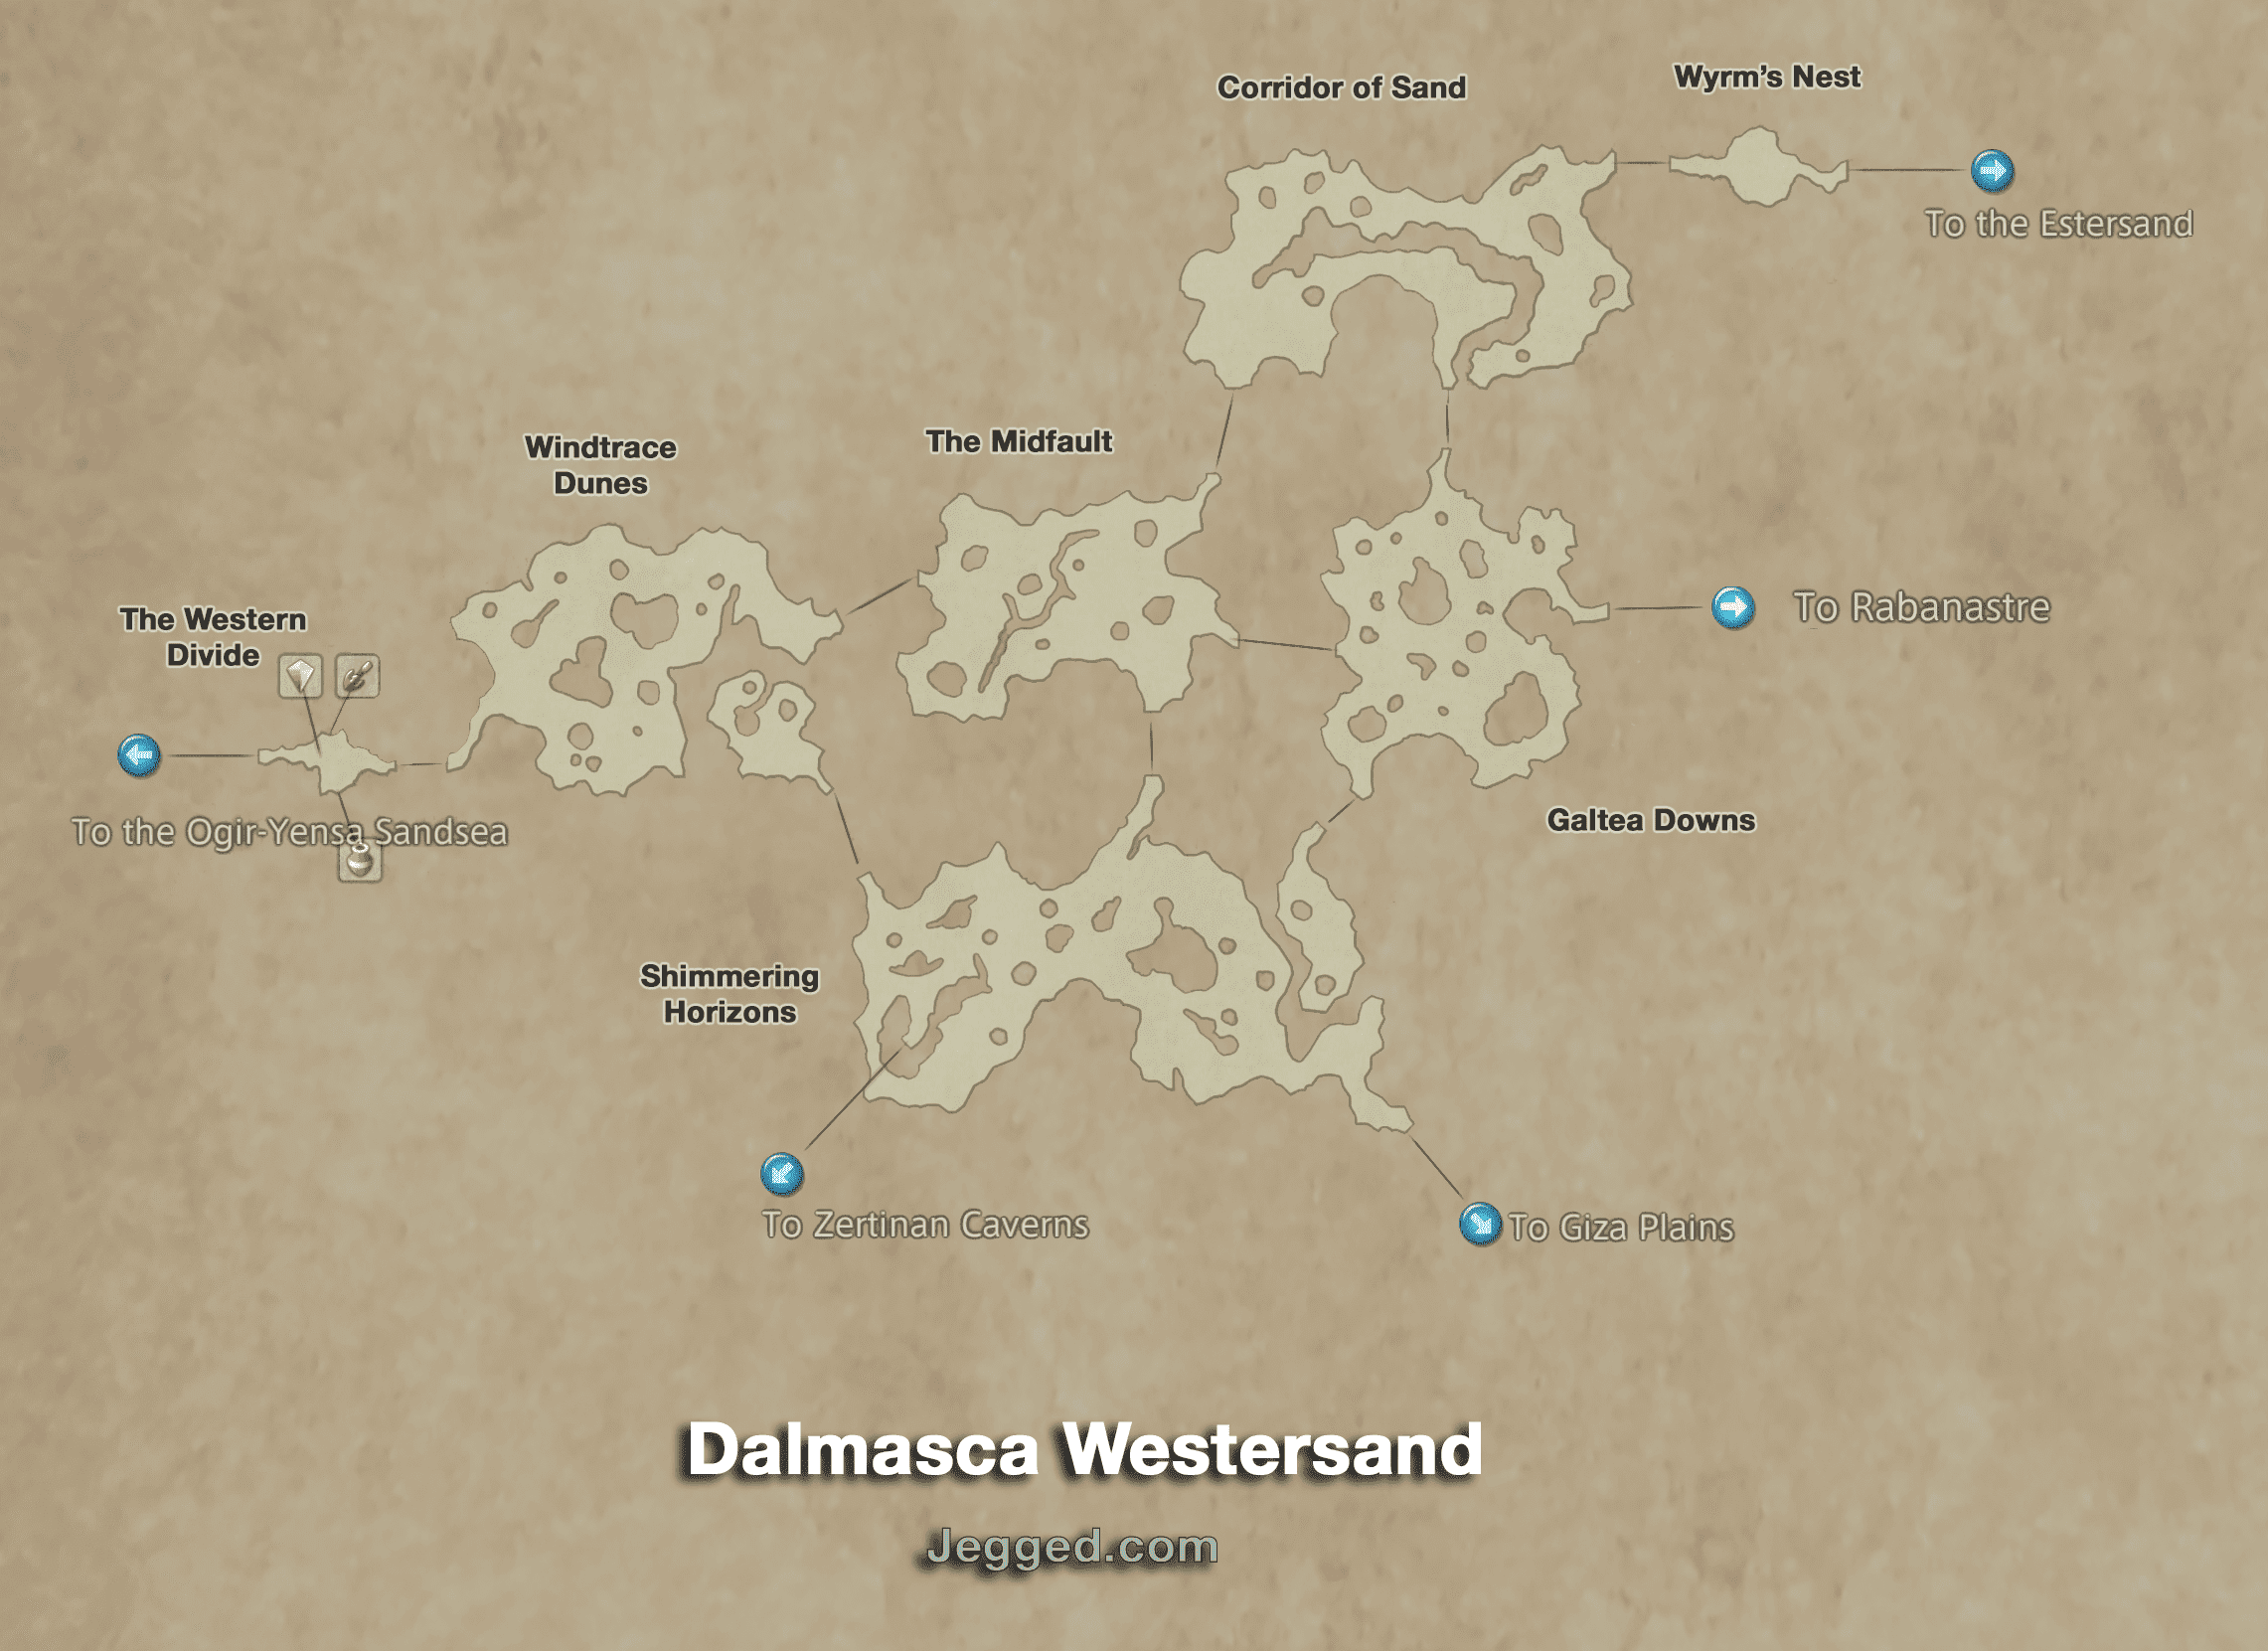 Map of the Dalmasca Westersand